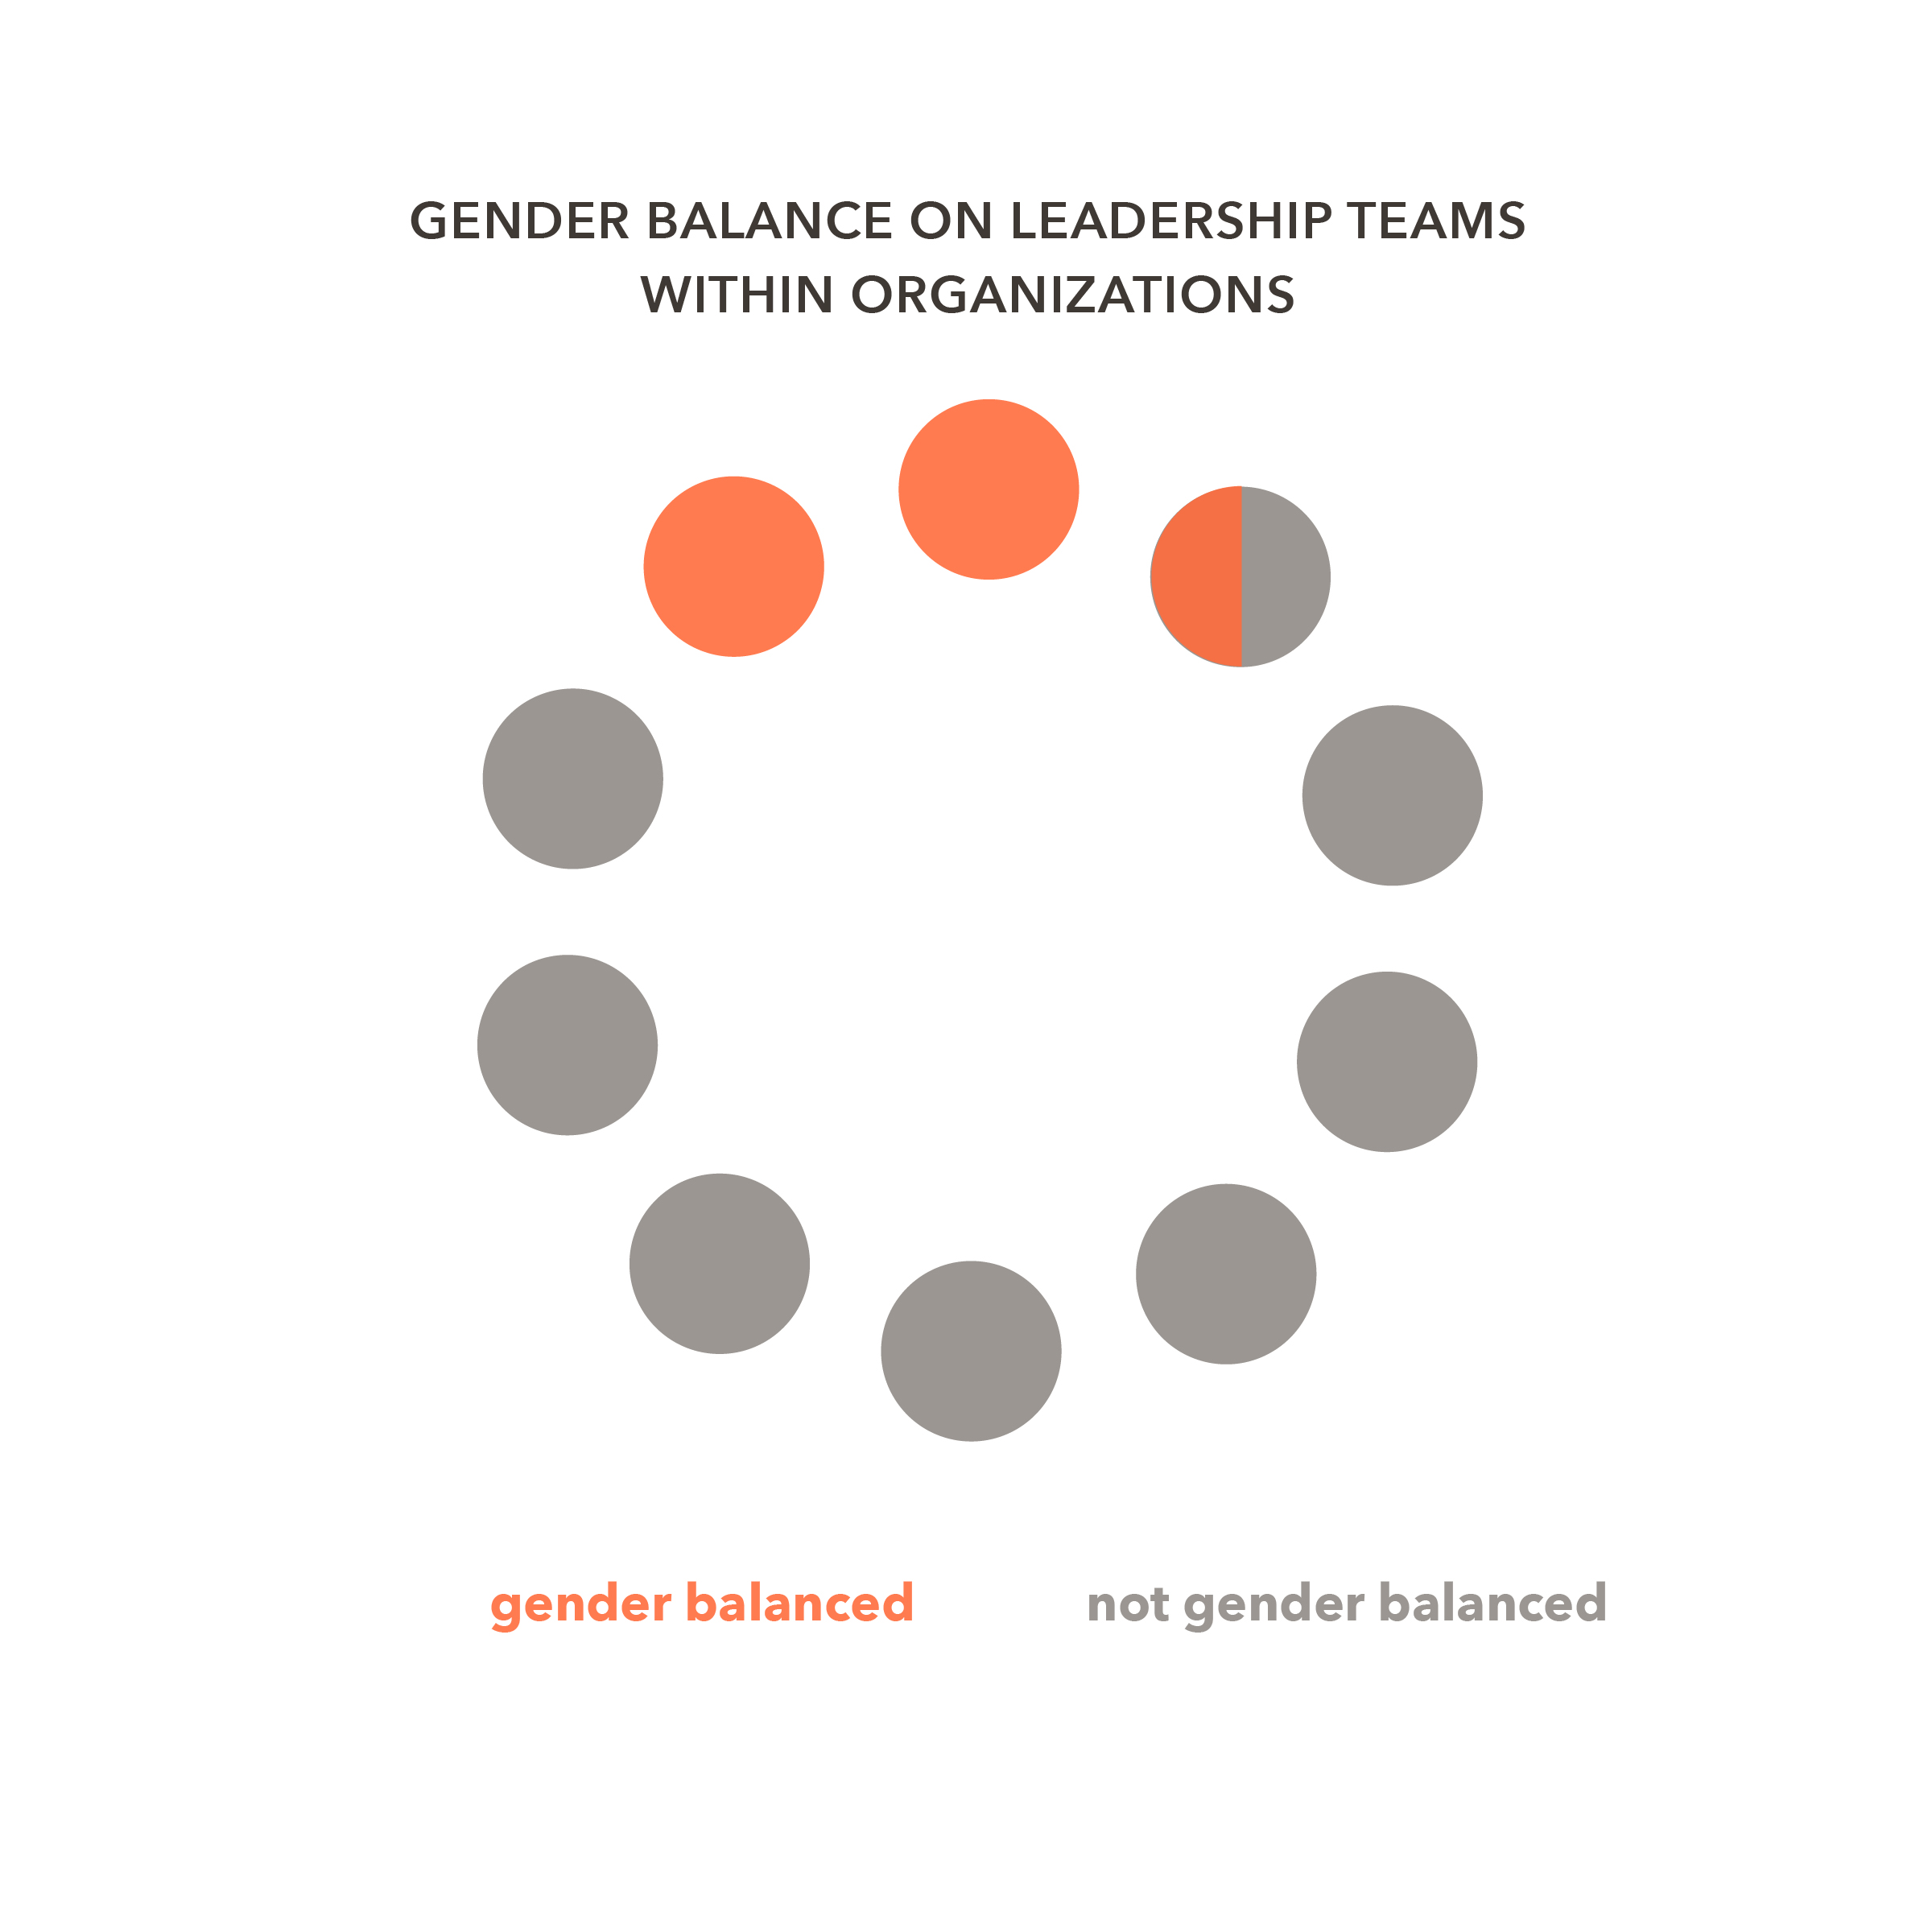 Organizational findings. - We also looked at gender balance within organizations. Of the 206 organizations we analyzed, we found that two out of three organizations (66 percent) did not have gender-balanced leadership teams.